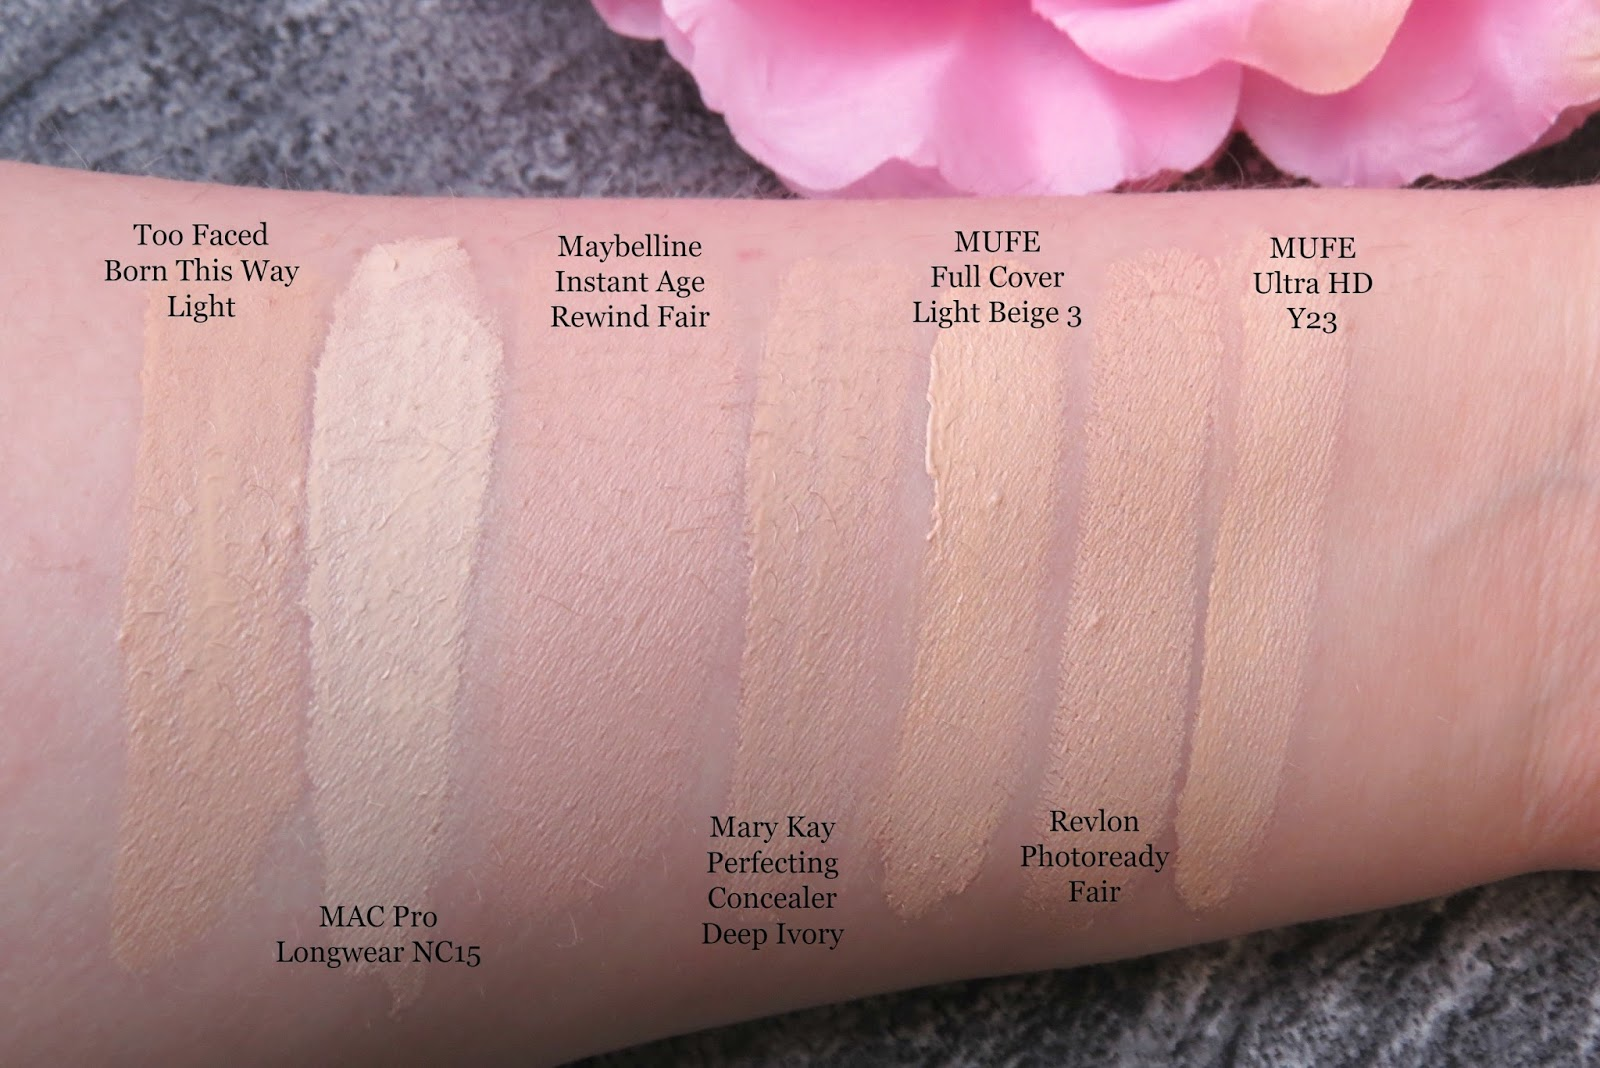 too faced concealer before and after. too faced born this way naturally radiant concealer light swatch review comparison before and after e